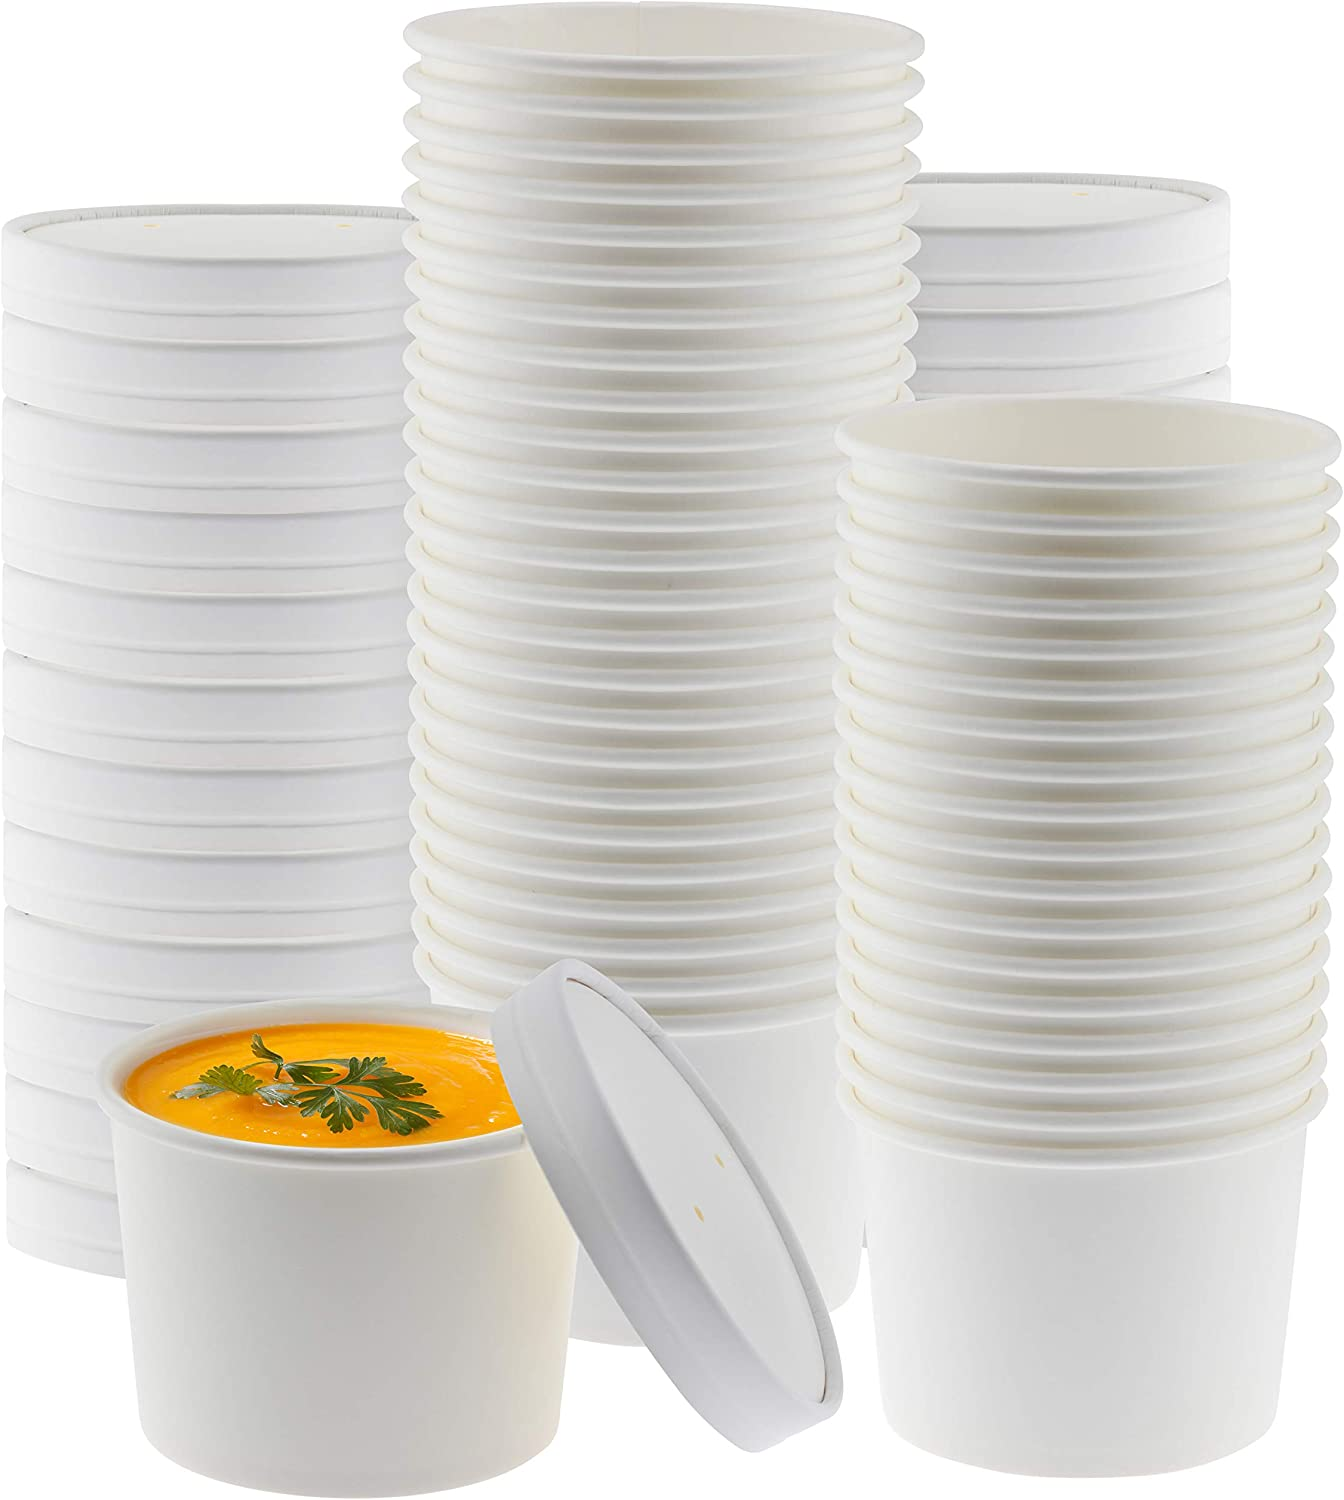 NYHI Paper Soup Storage Containers With Lids | 8 Ounce Insulated Take Out Disposable Food Storage Container Cups For Hot & Cold Foods | Eco Friendly To Go Soup Bowls With Vented Lid | 50 Pack